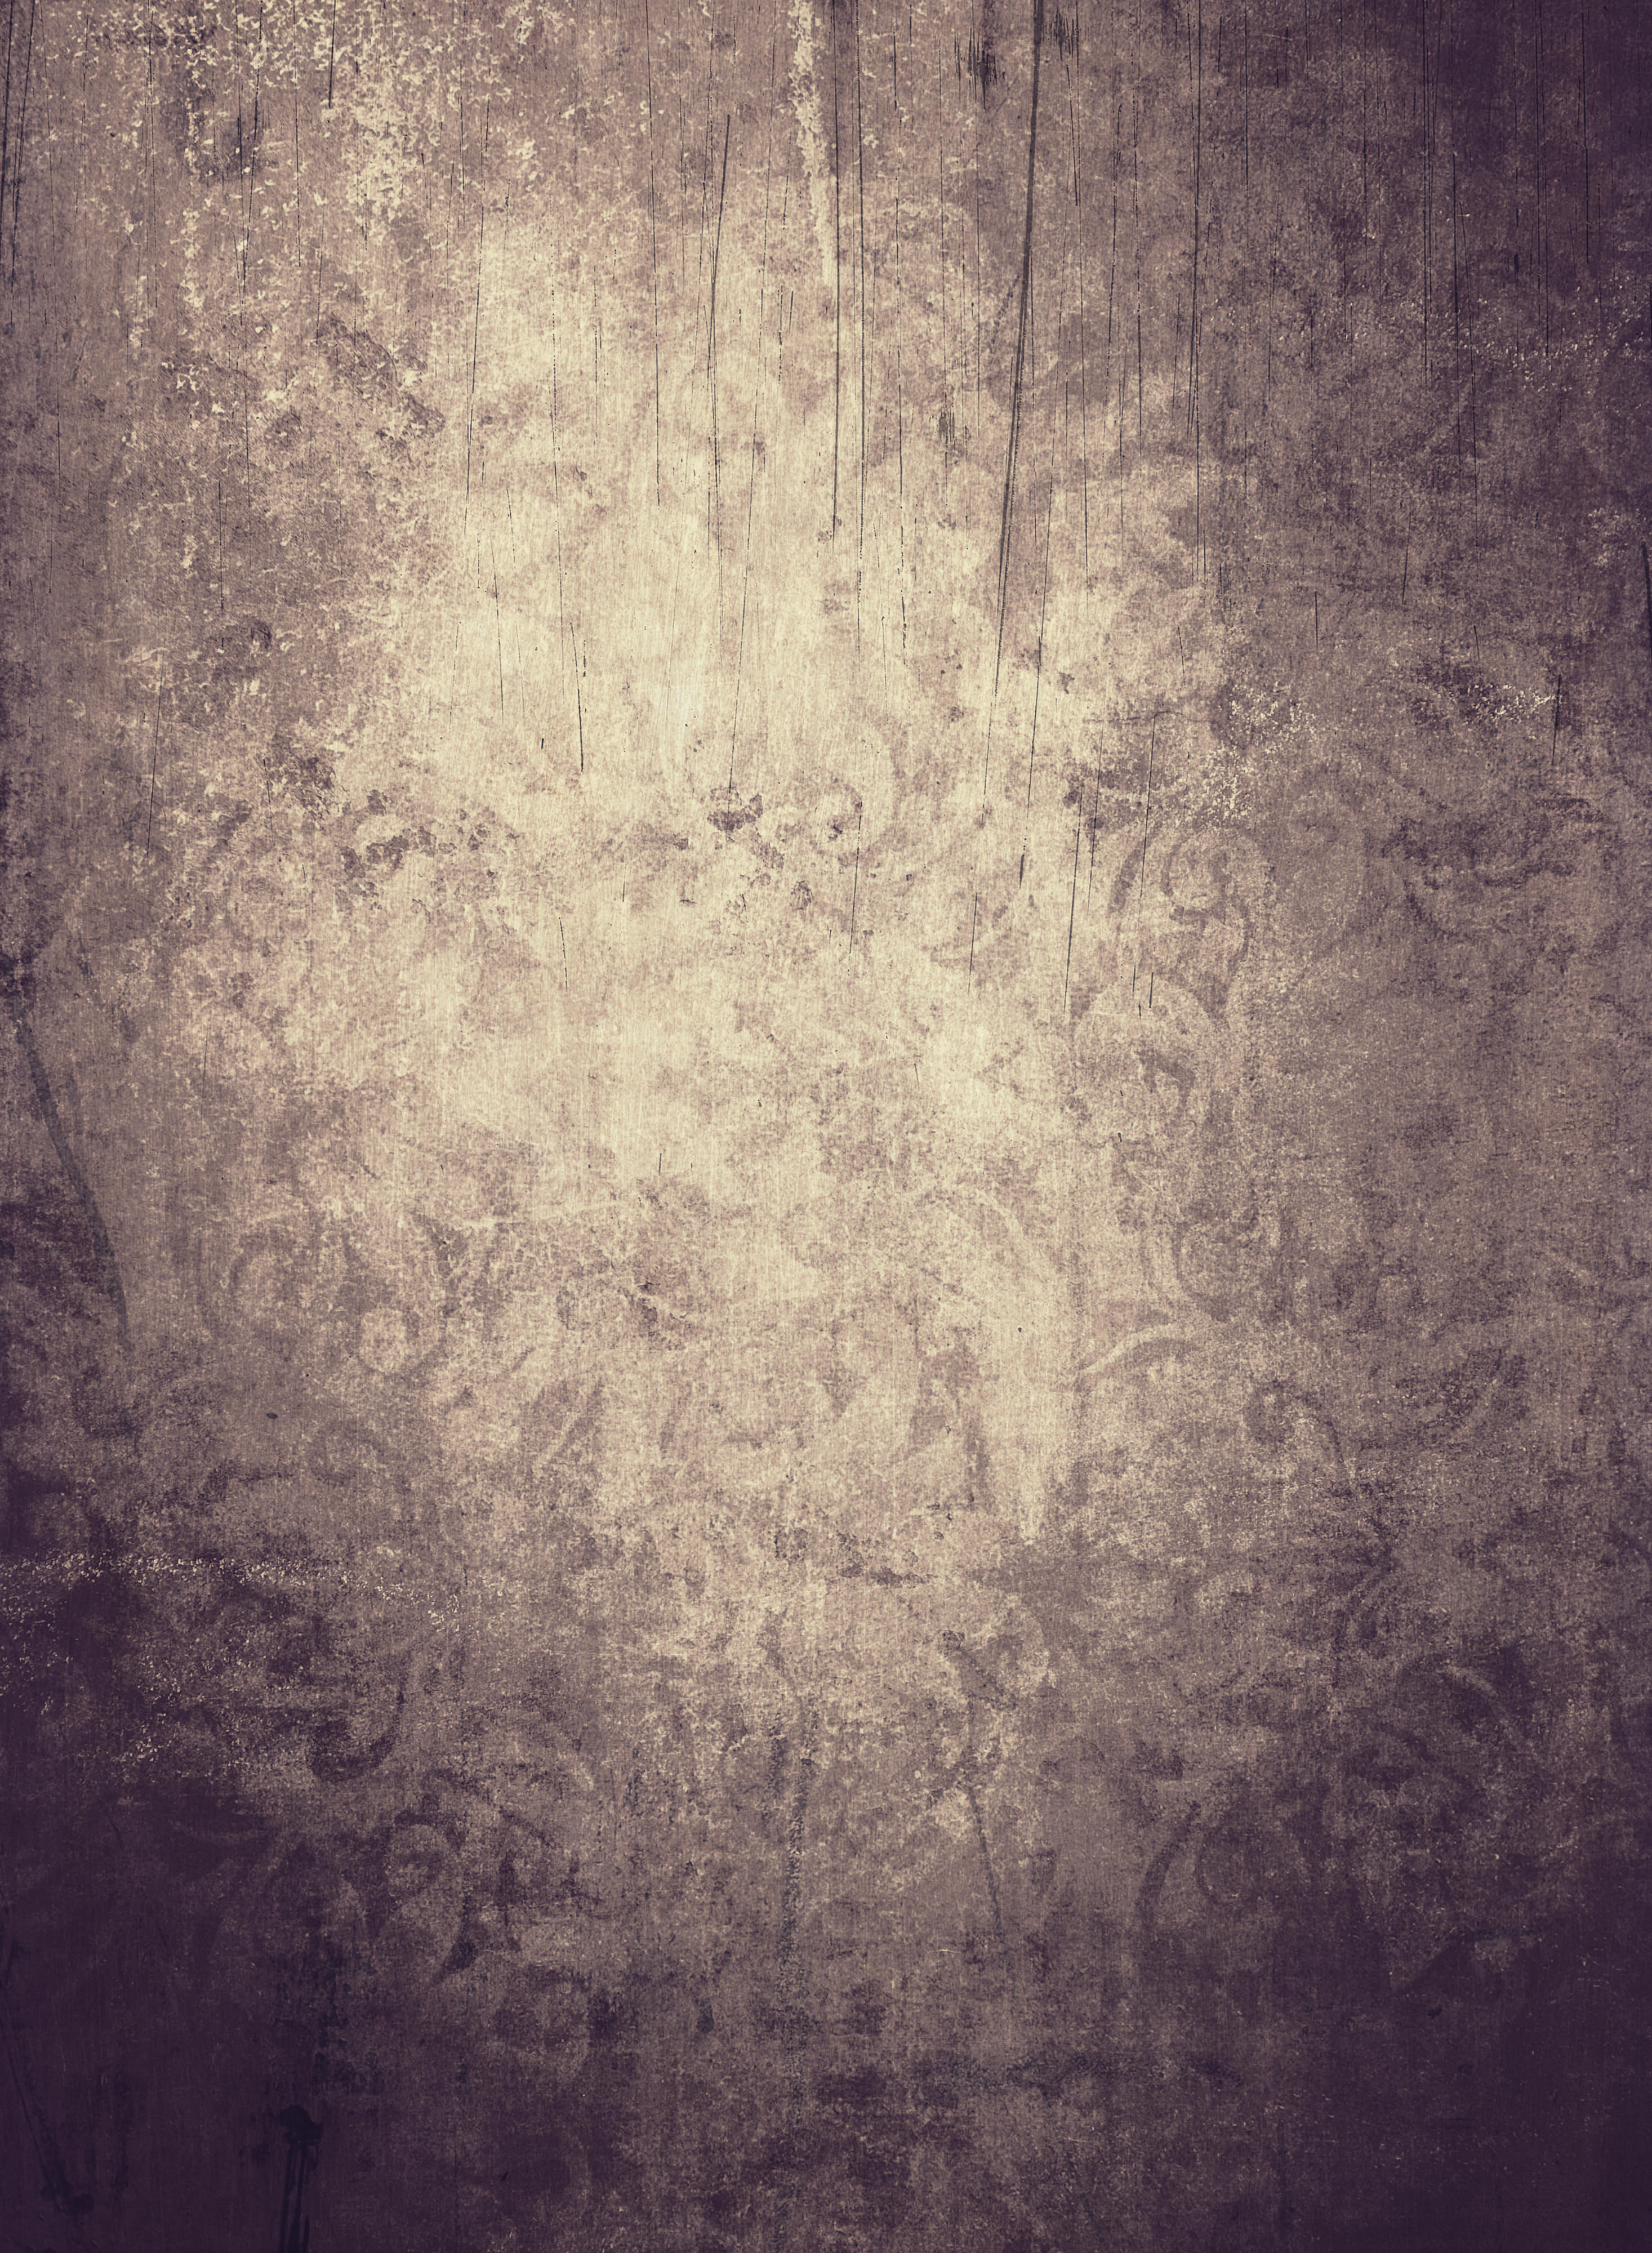 free photo  vintage texture - design  faded  old